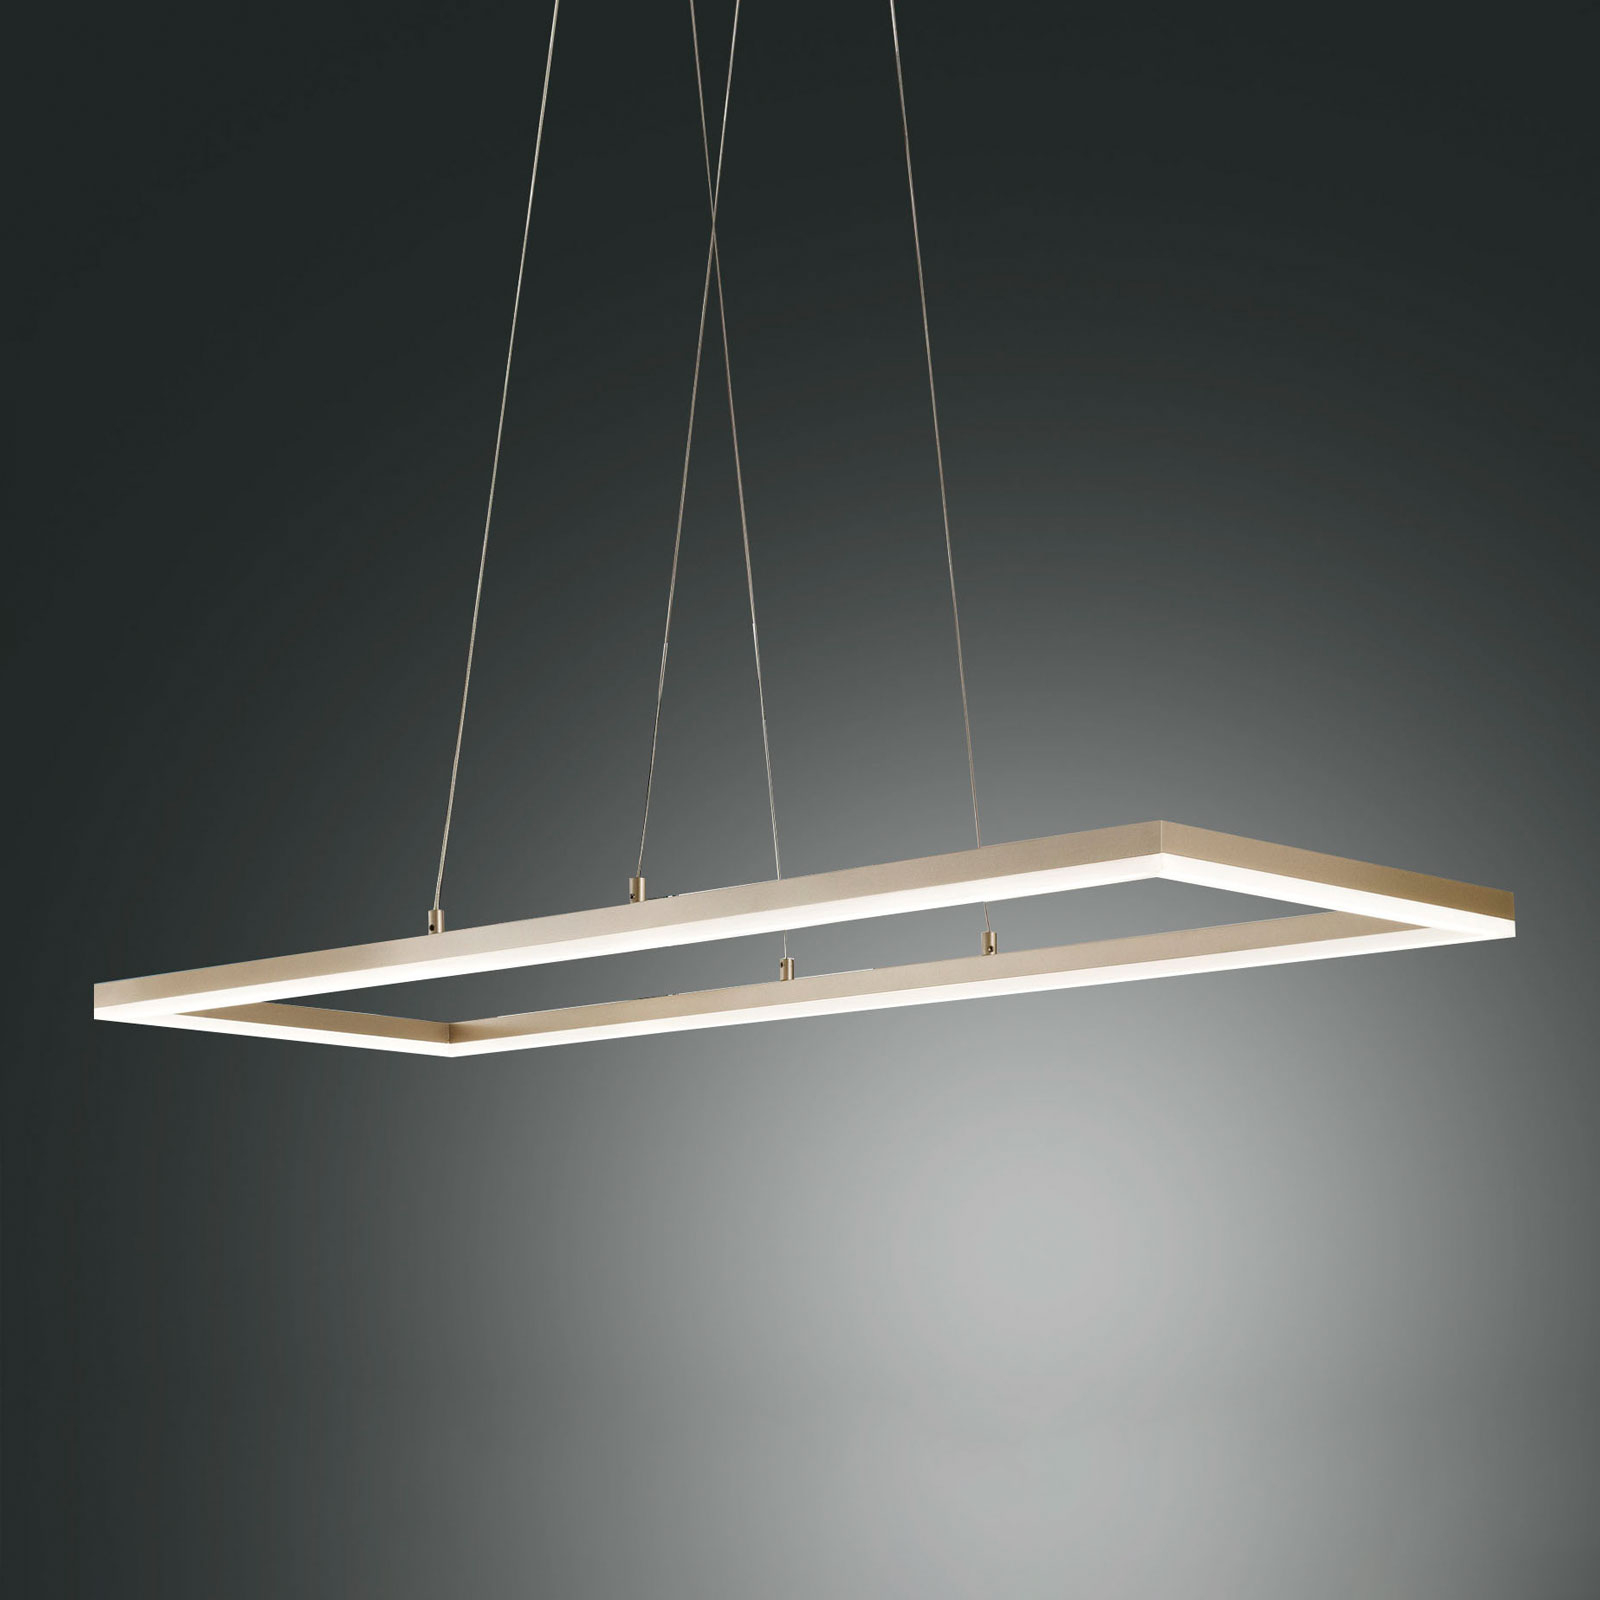 Suspension LED Bard 92x32 cm en finition doré mat